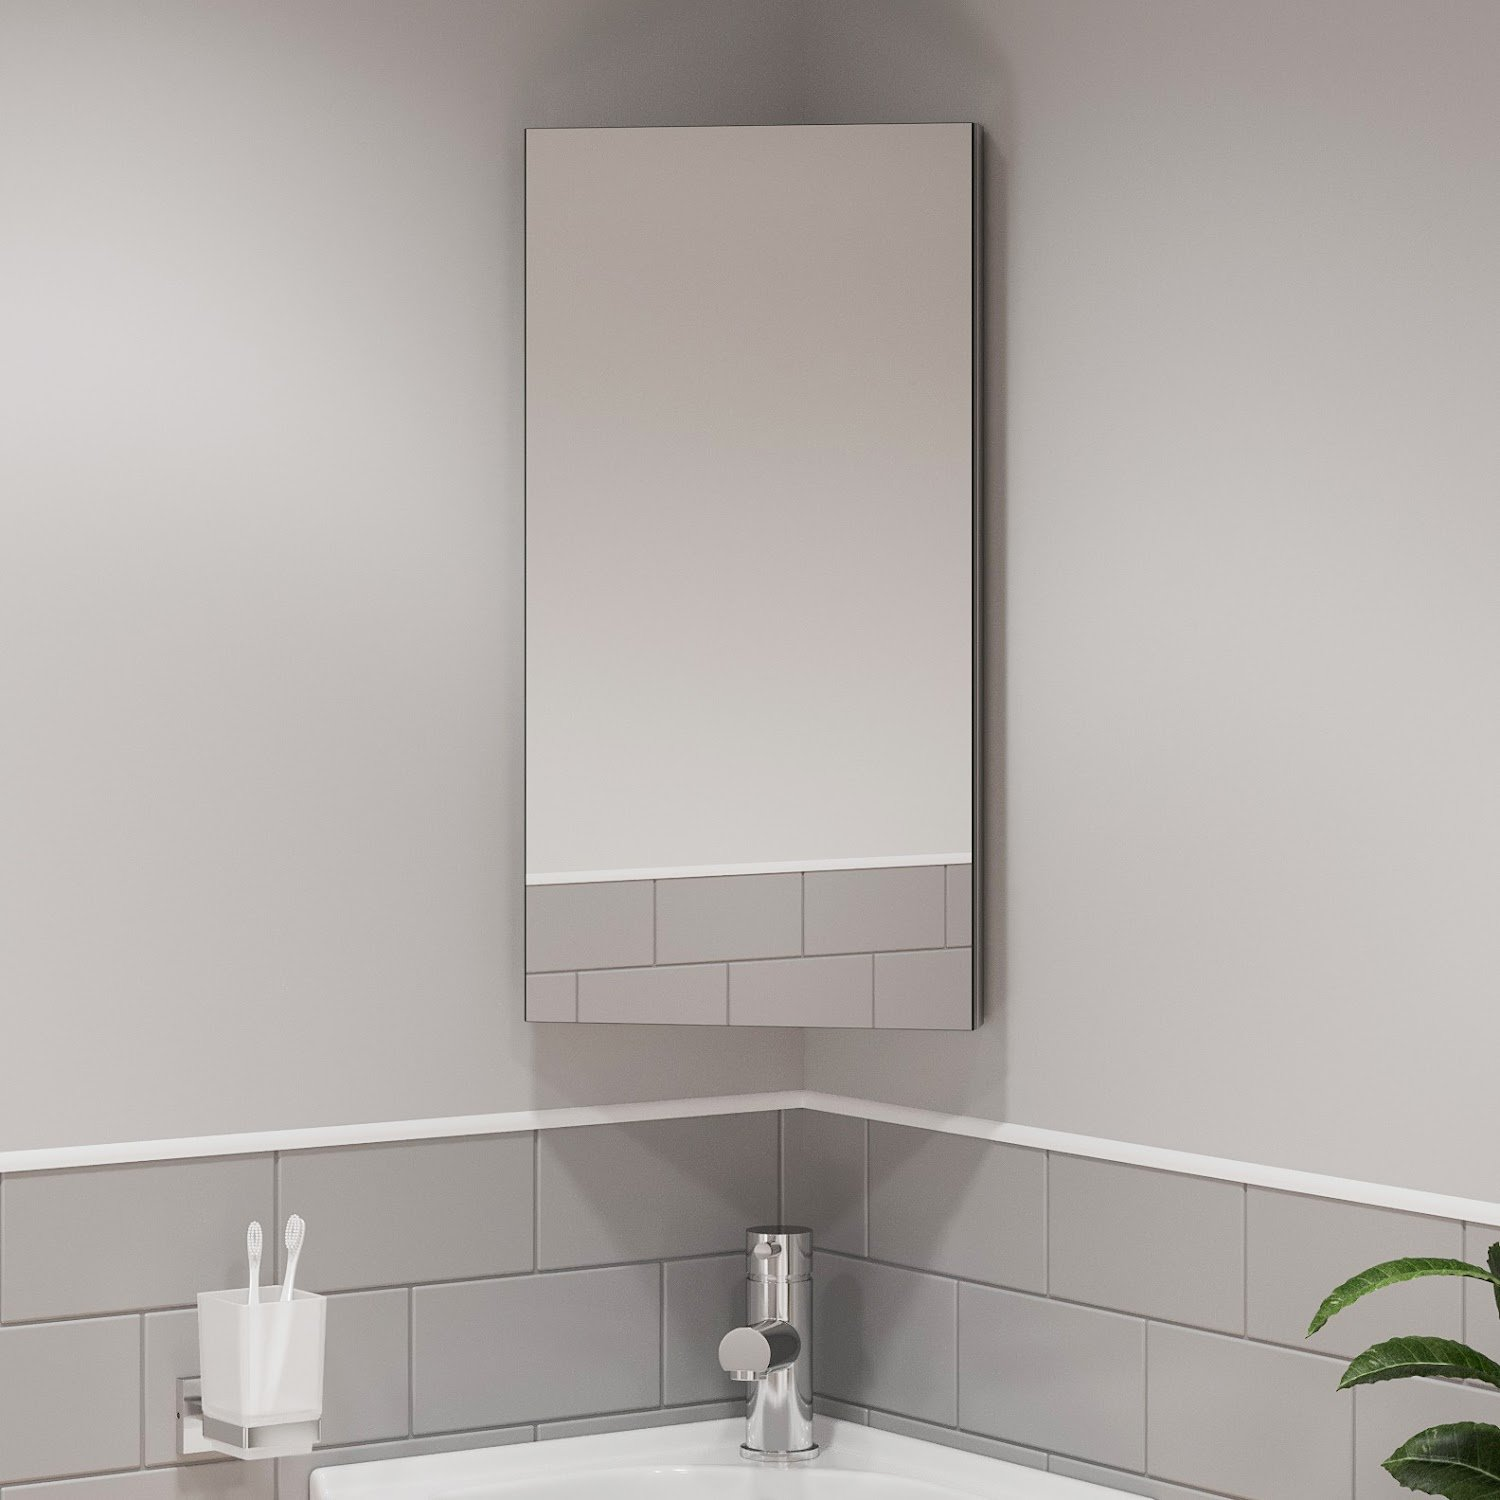 Single Door Corner Bathroom Mirror Cabinet Cupboard Stainless Steel Wall Mounted Ebay